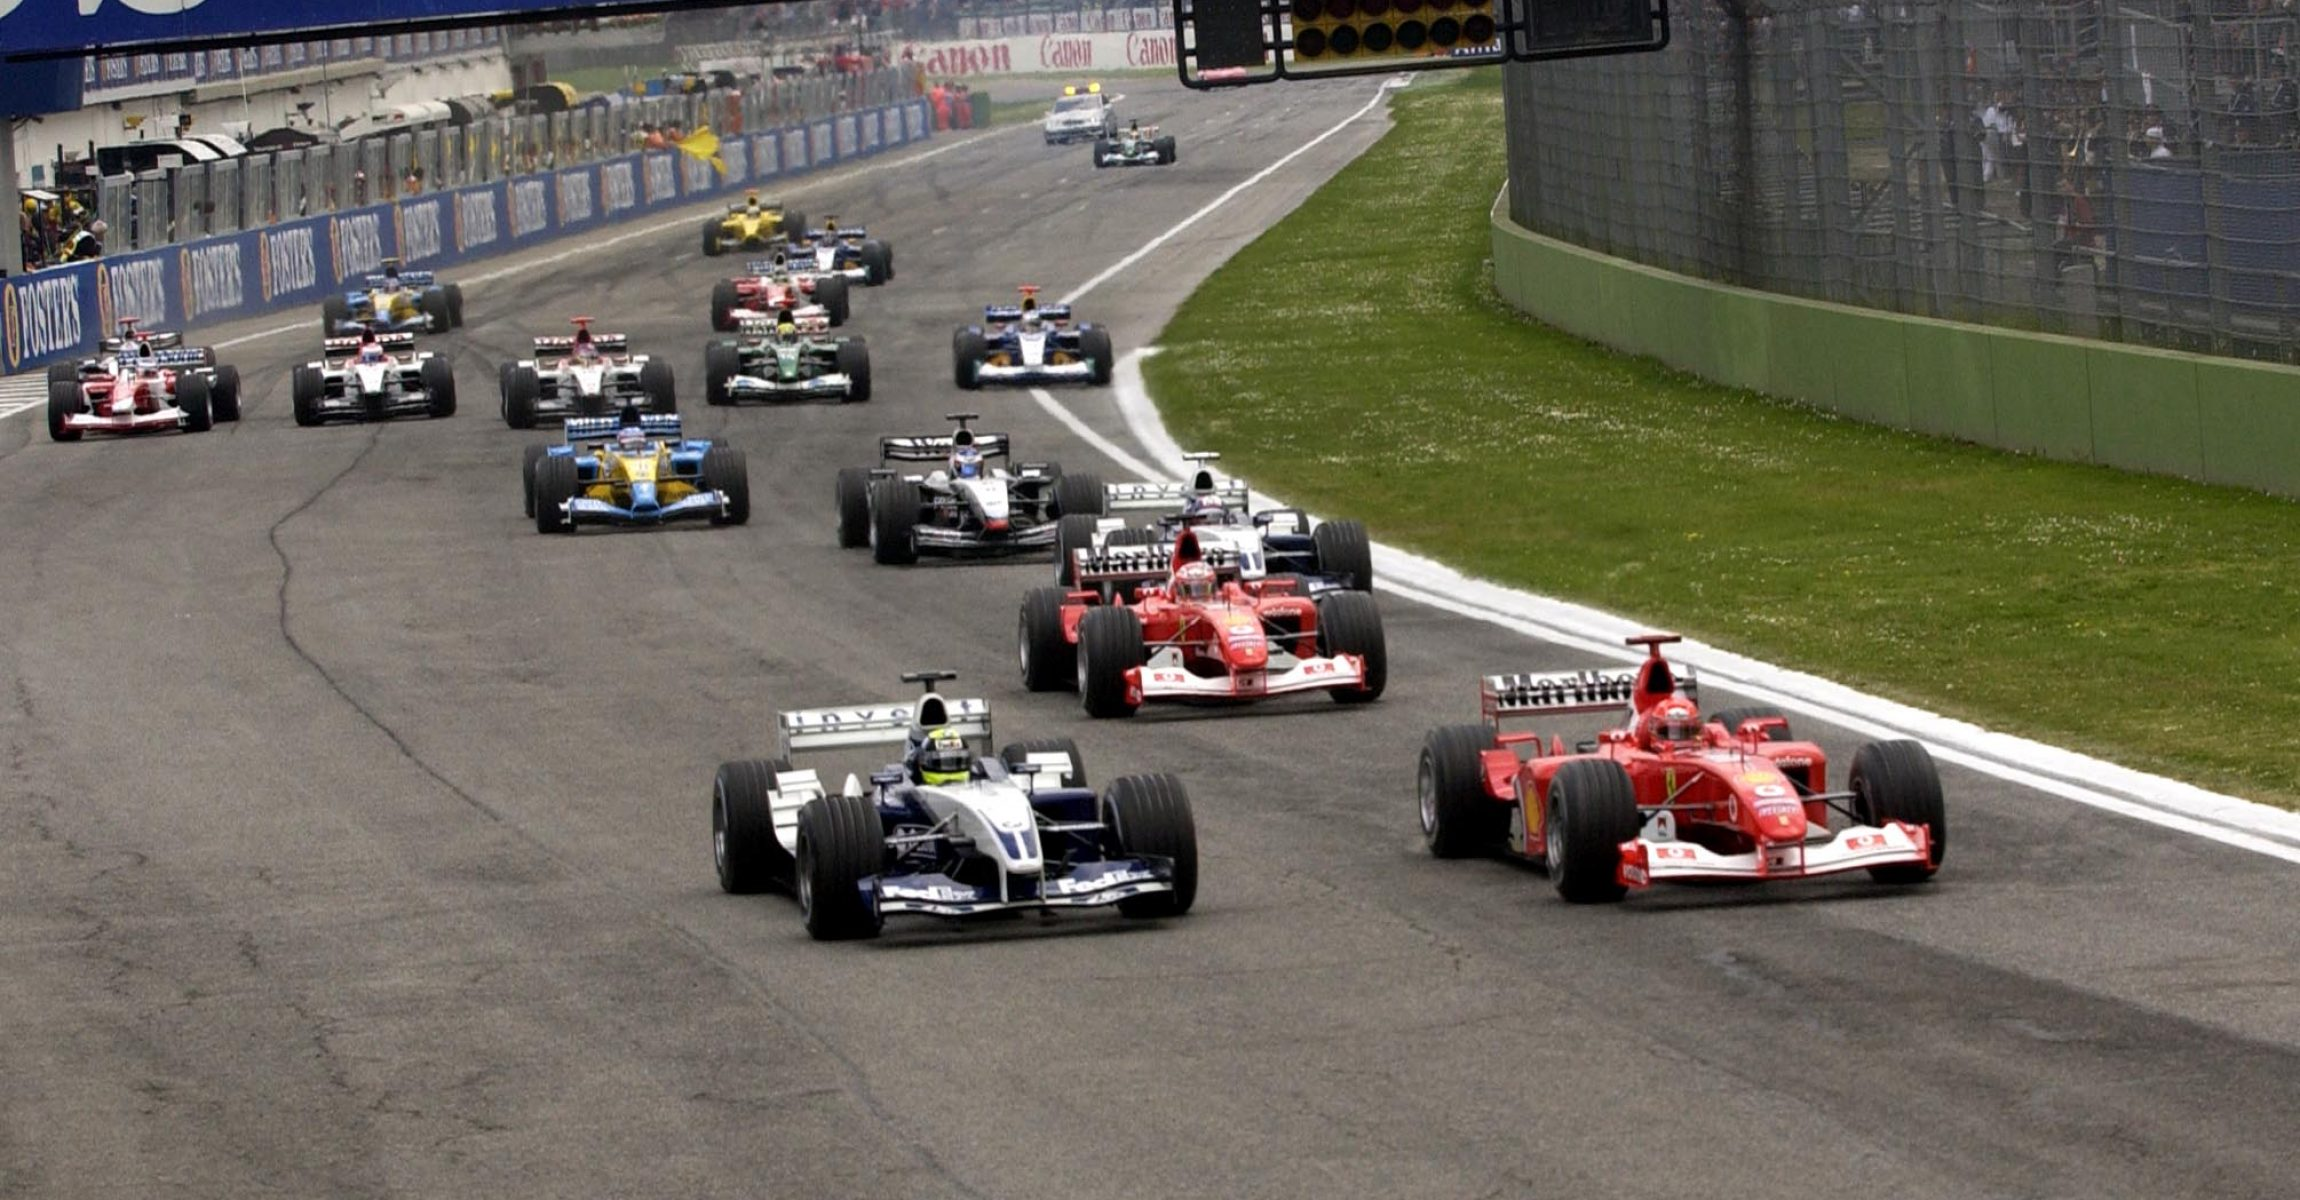 Imola, GP, Start, San Marino Grand Prix 2003,